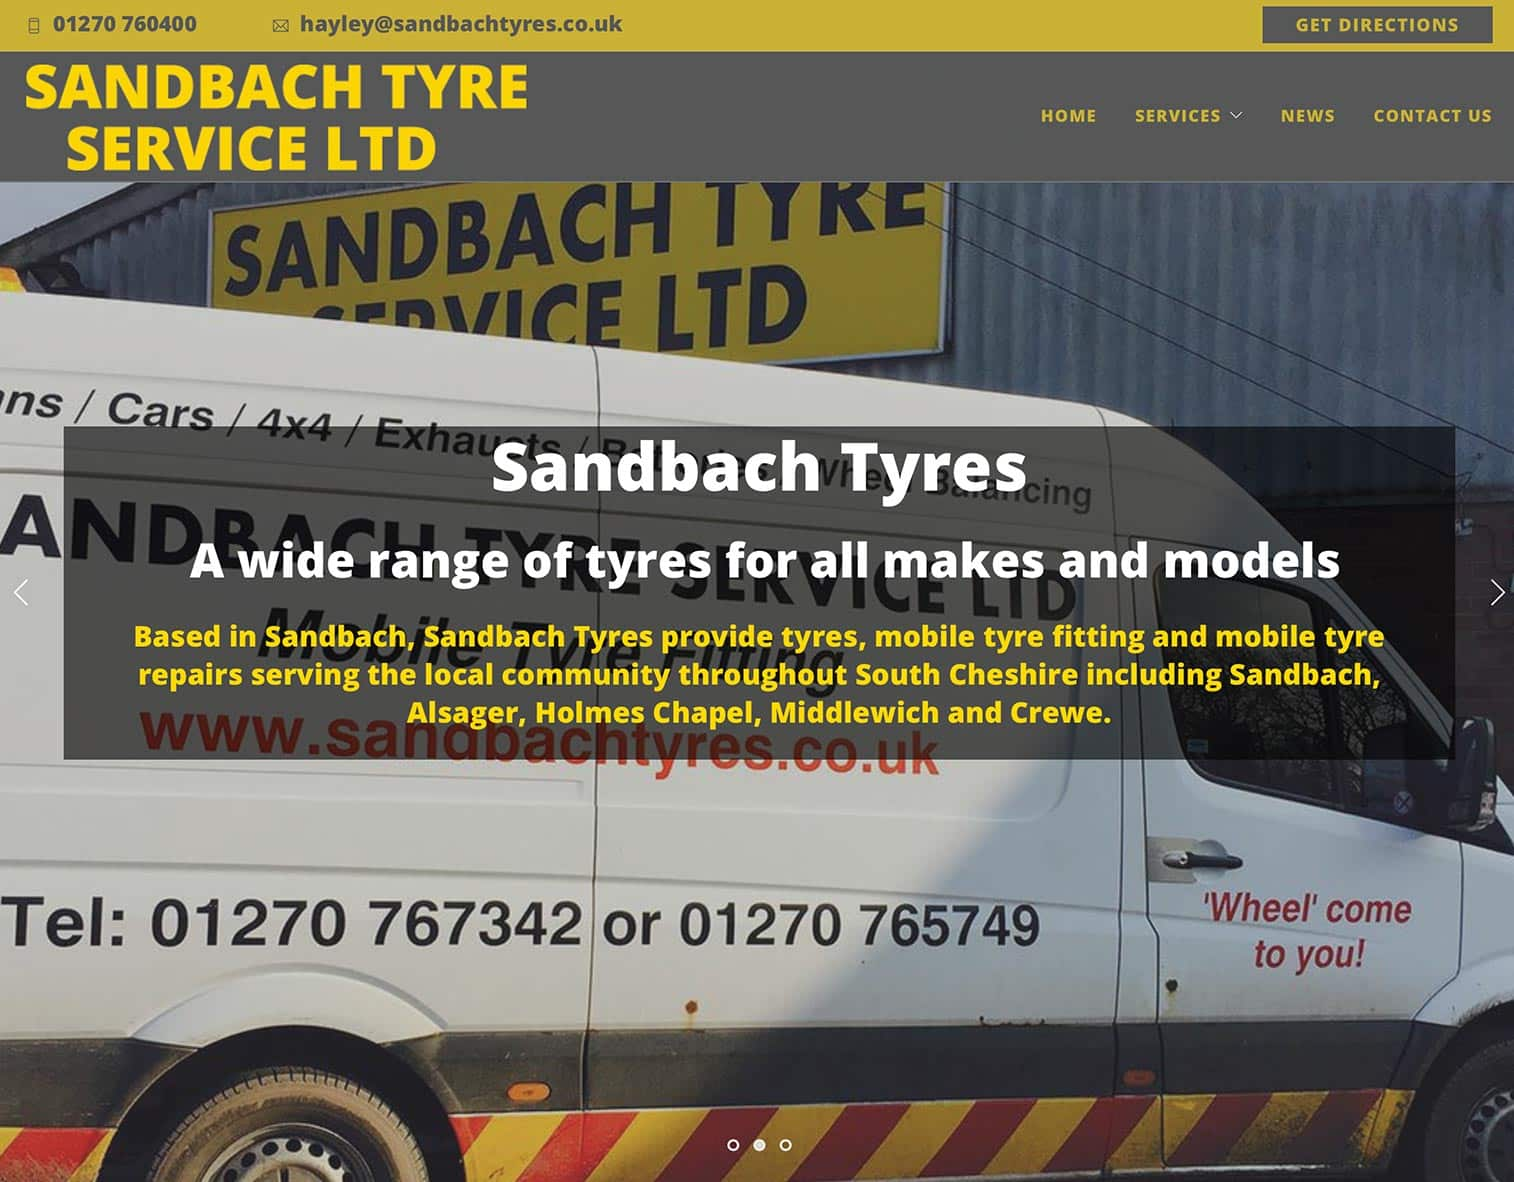 Sandbach Tyre Services Website